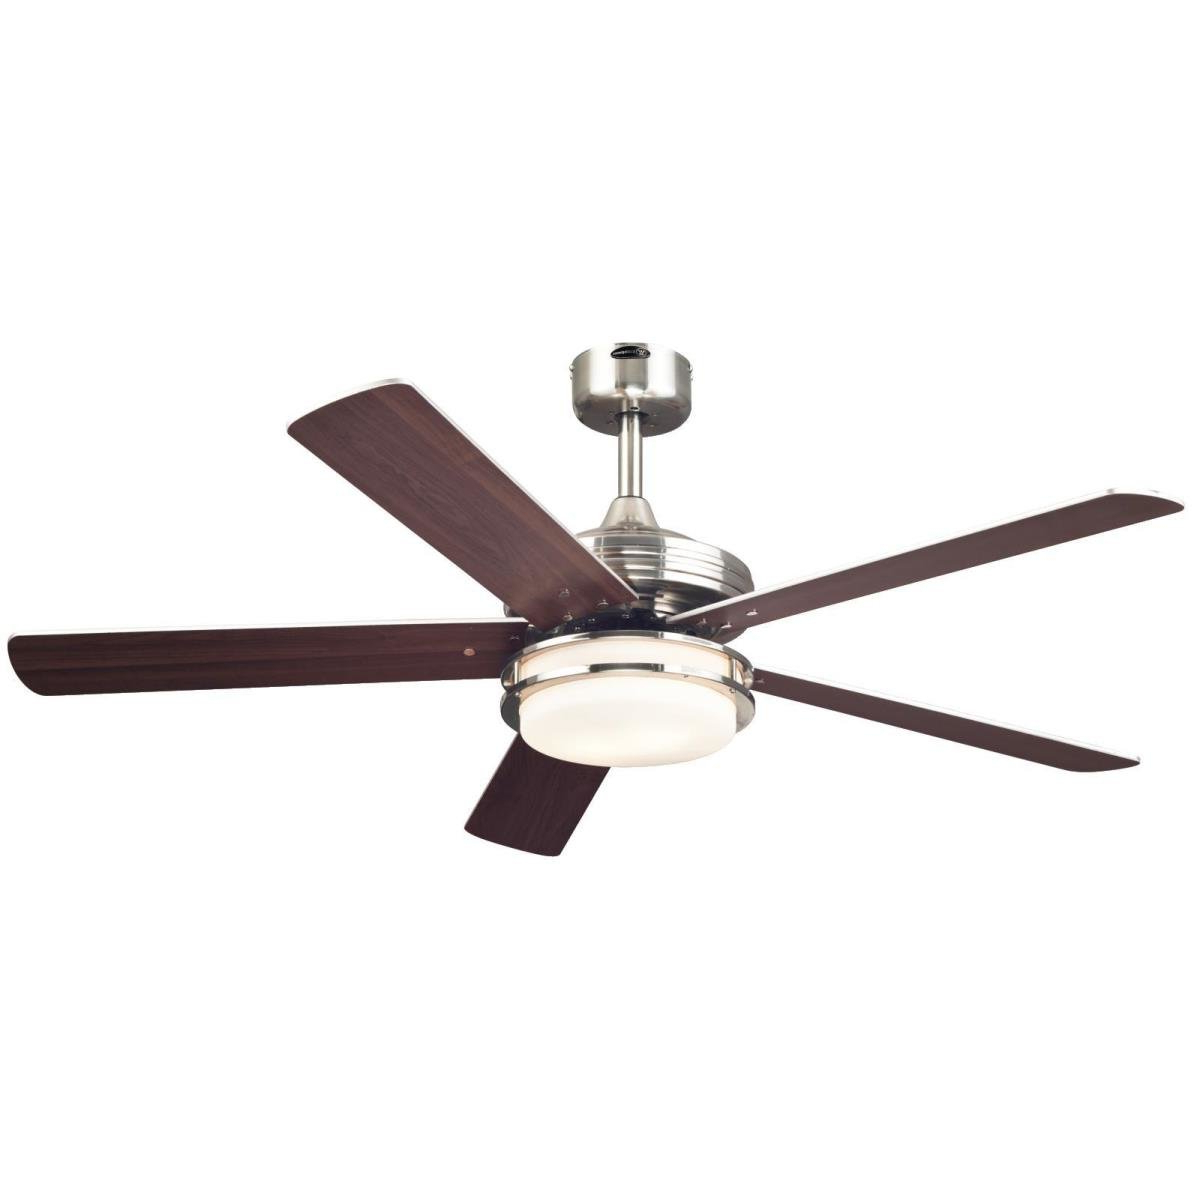 "Most Current Windemere 5 Blade Ceiling Fans With Remote For Andover Mills 52"" Boulder 5 Blade Ceiling Fan & Reviews (View 5 of 20)"